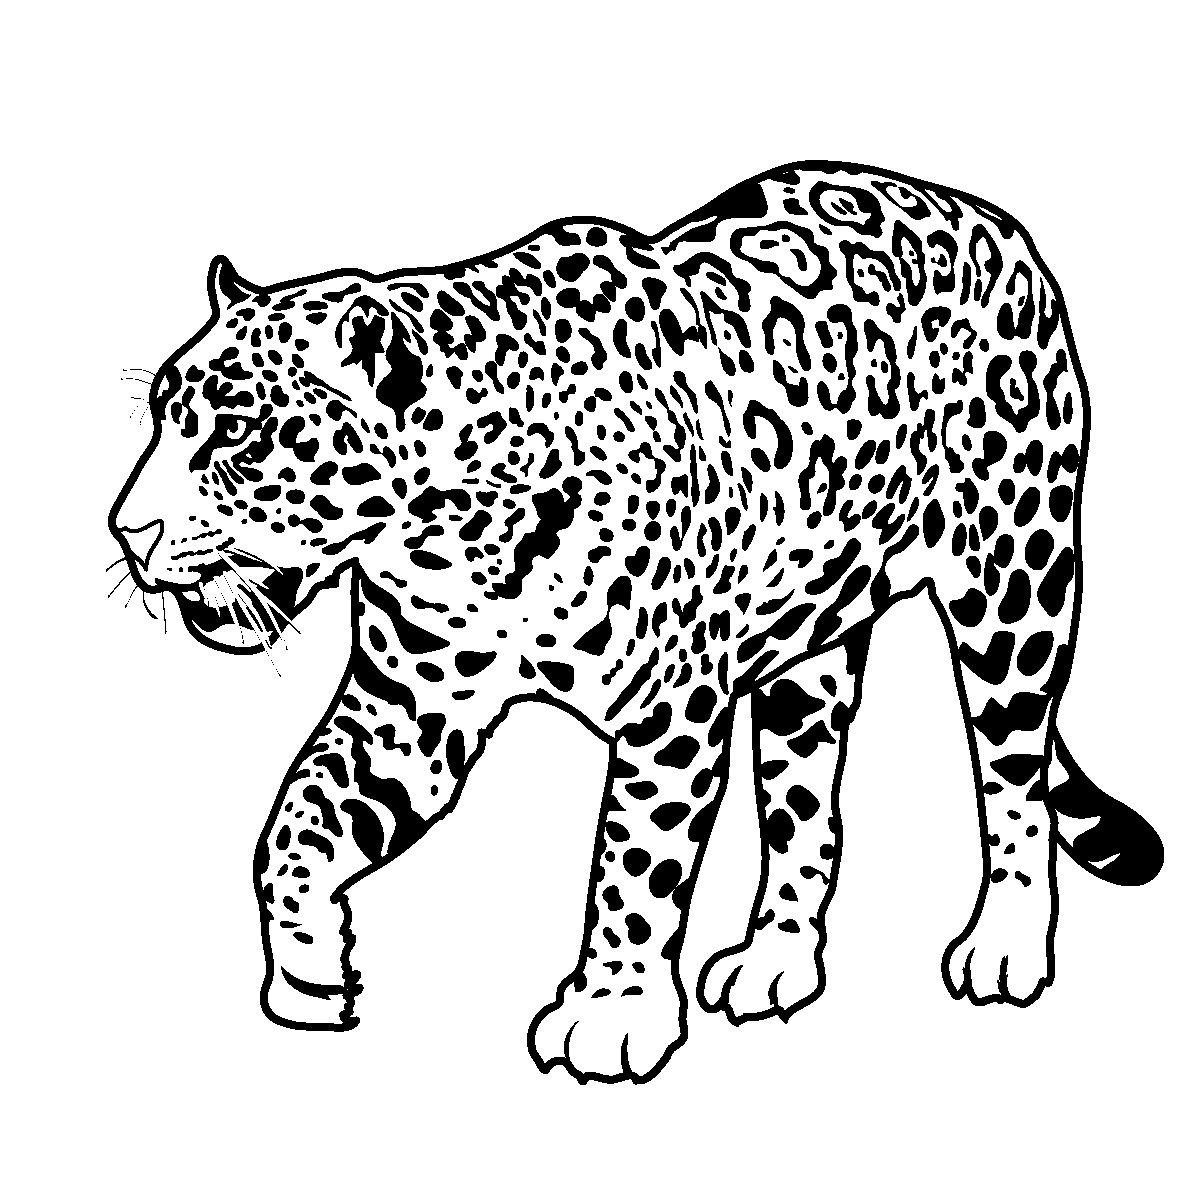 jaguar pictures to print jaguar laying coloring pages free printable kids print pictures jaguar to